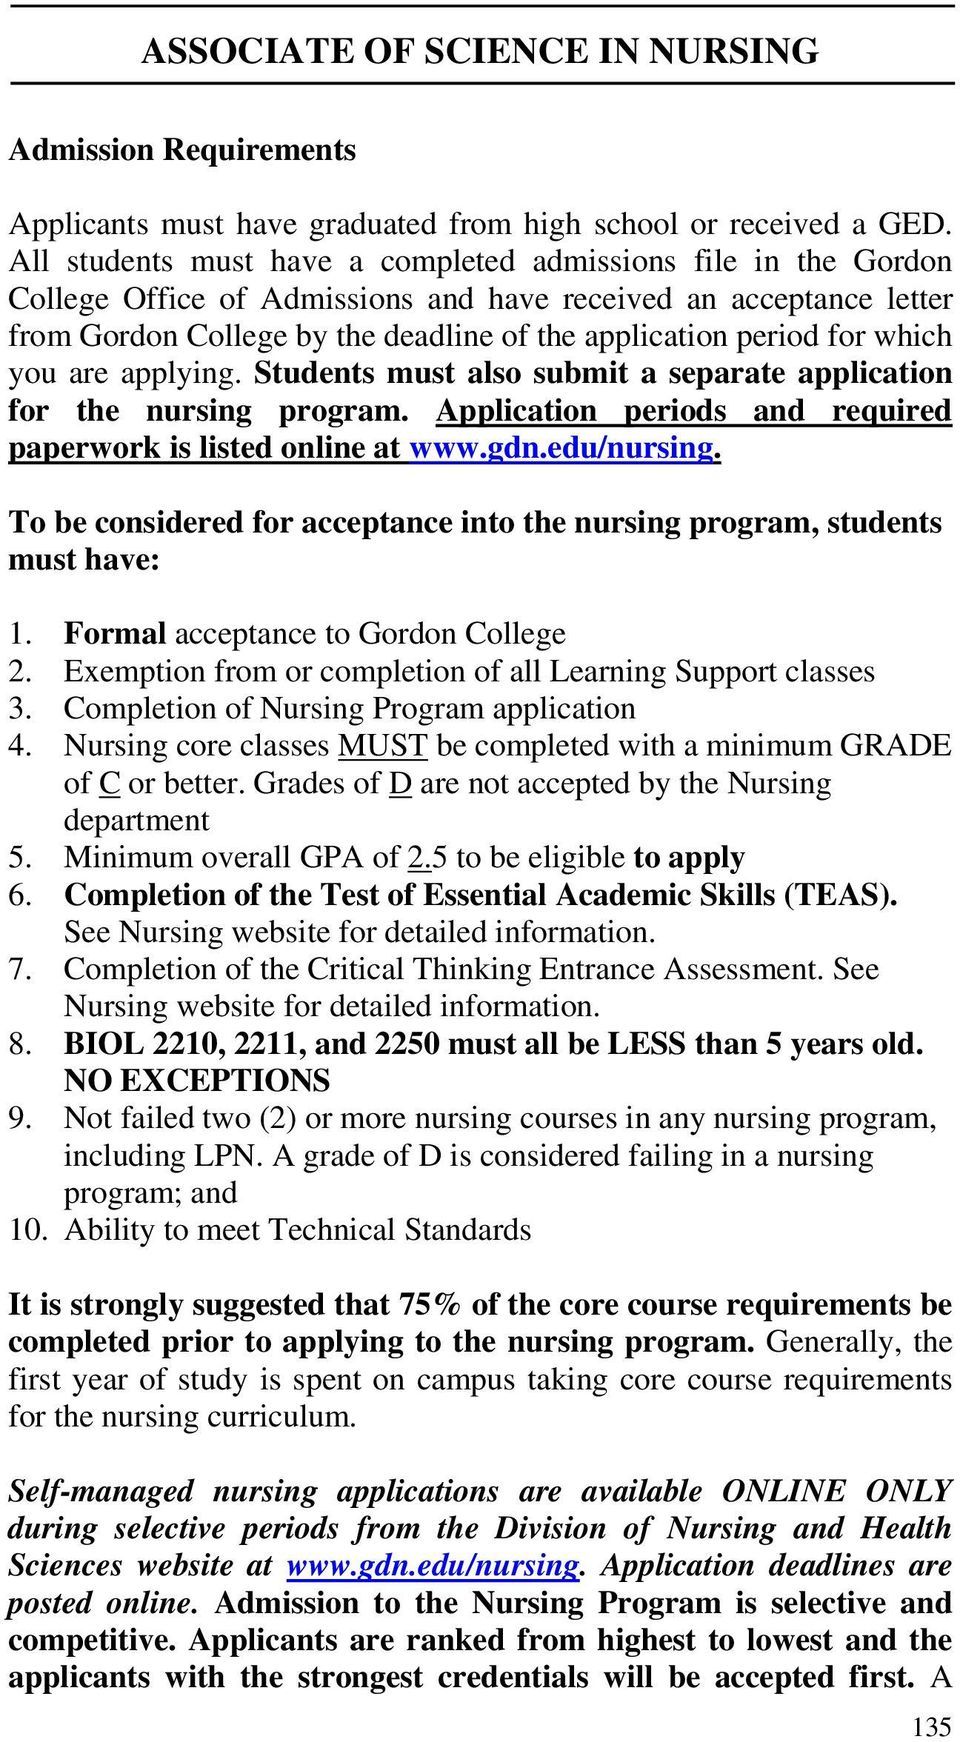 which you are applying. Students must also submit a separate application for the nursing program. Application periods and required paperwork is listed online at www.gdn.edu/nursing.